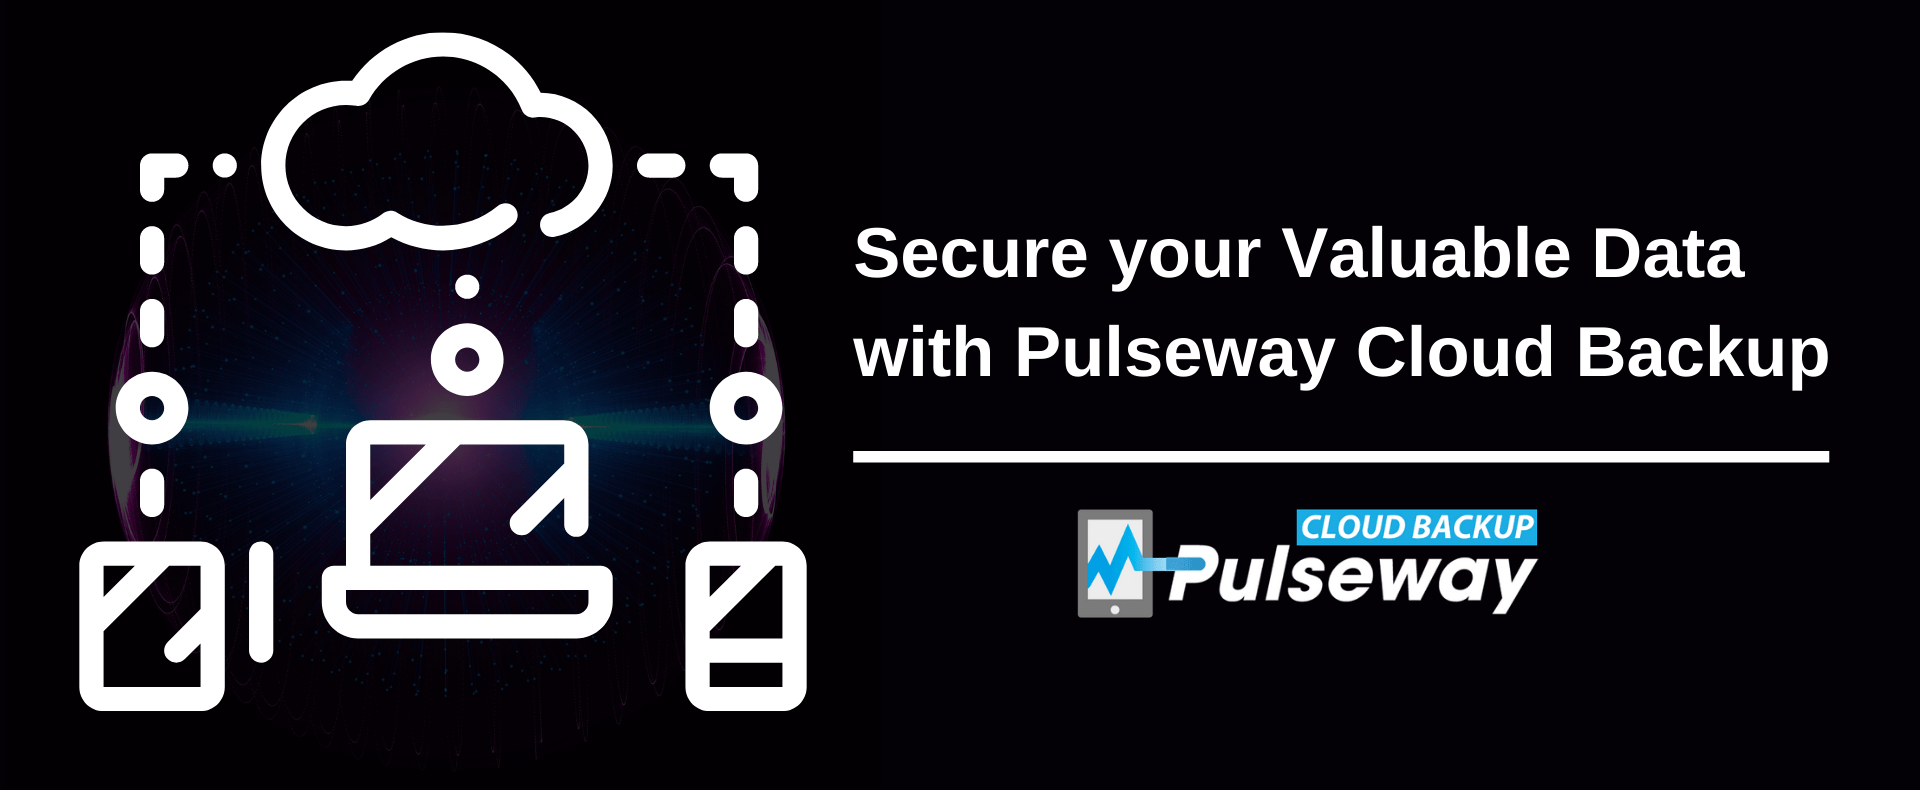 Secure Your Valuable Data With Pulseway Cloud Backup